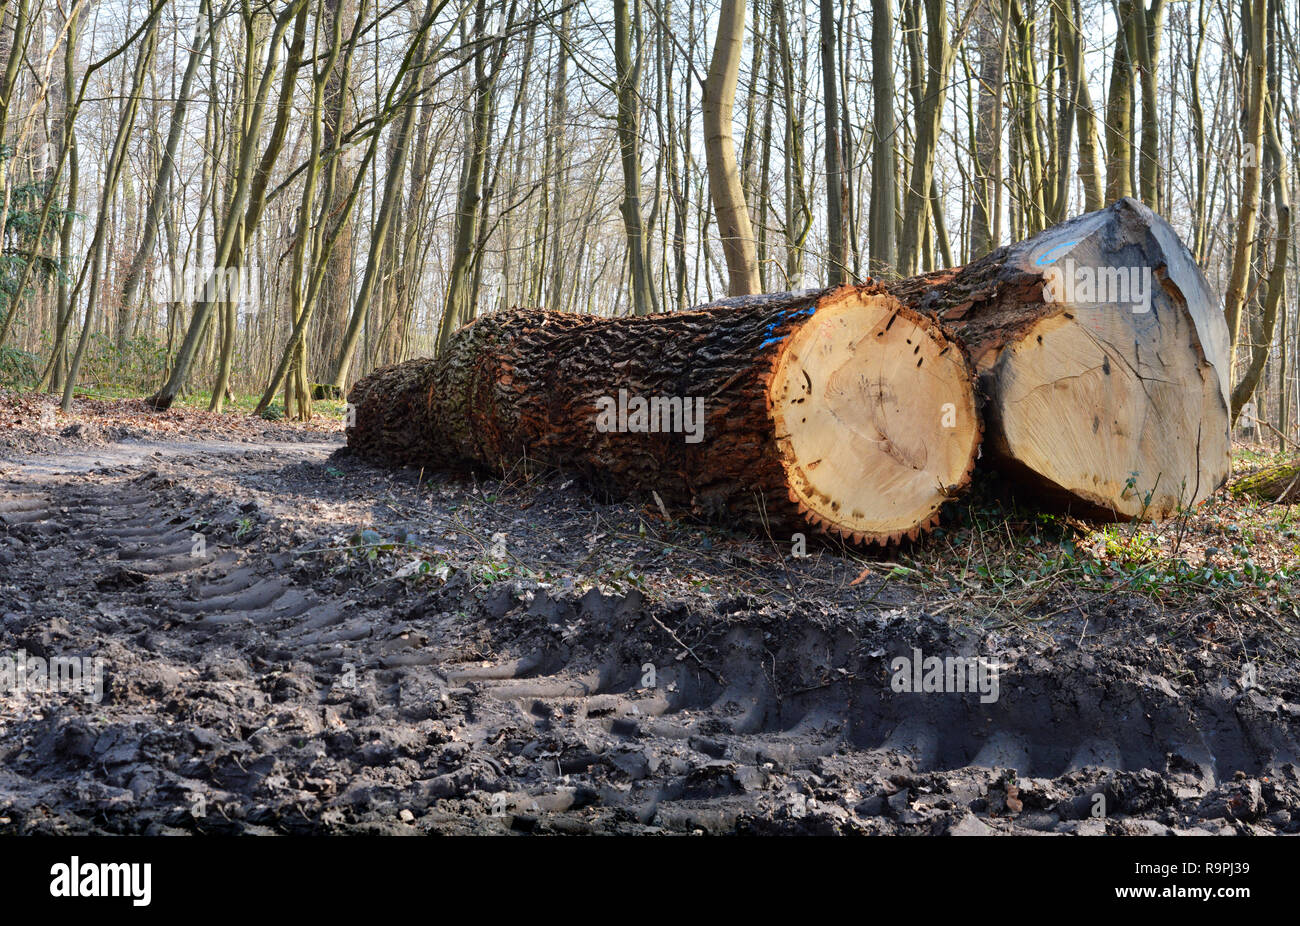 Deforestation in a forest to obtain wood. Ecological disaster - Stock Image